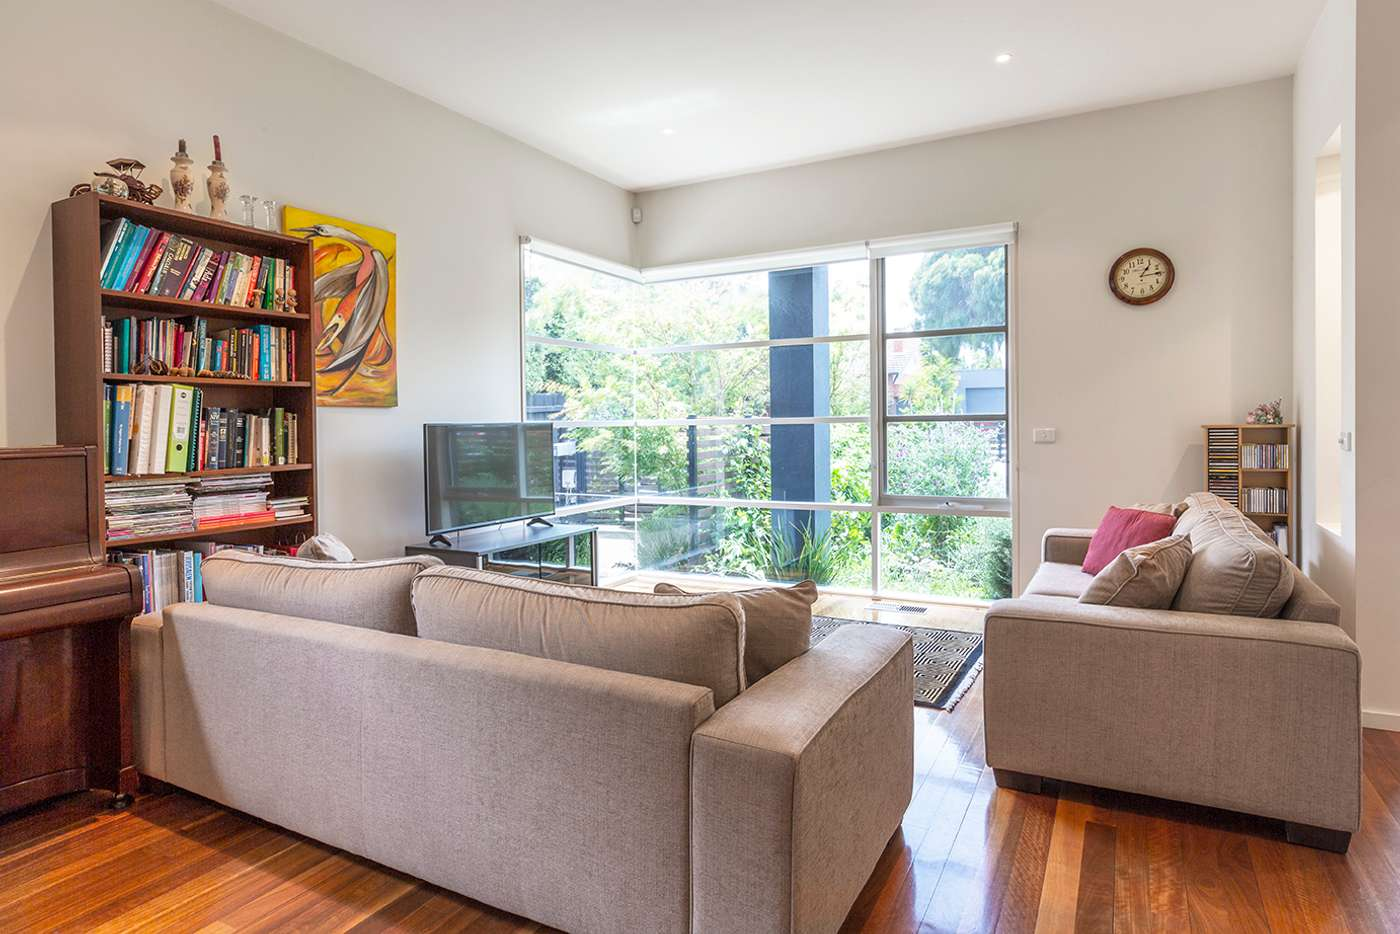 Seventh view of Homely house listing, 5 Raynes Street, Caulfield South VIC 3162